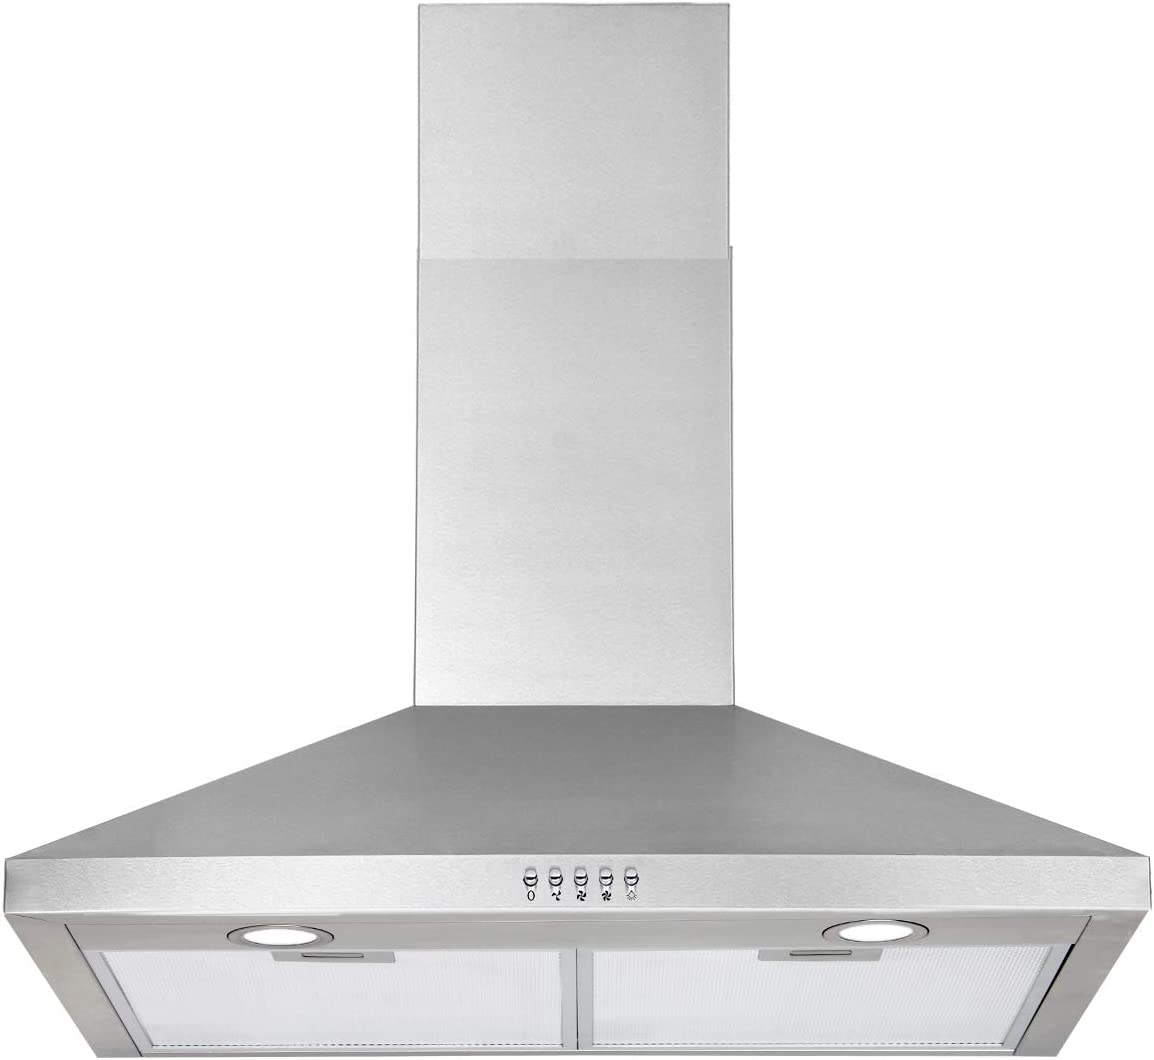 Stainless Steel Ducted Kitchen Hood Adjustable Chimney LED Extra Extension 30 Hood HTH 30 Wall Mount Range Hood Multi Choice 3 Speed 8-11ft Ceiling Push Button Exhaust Fan